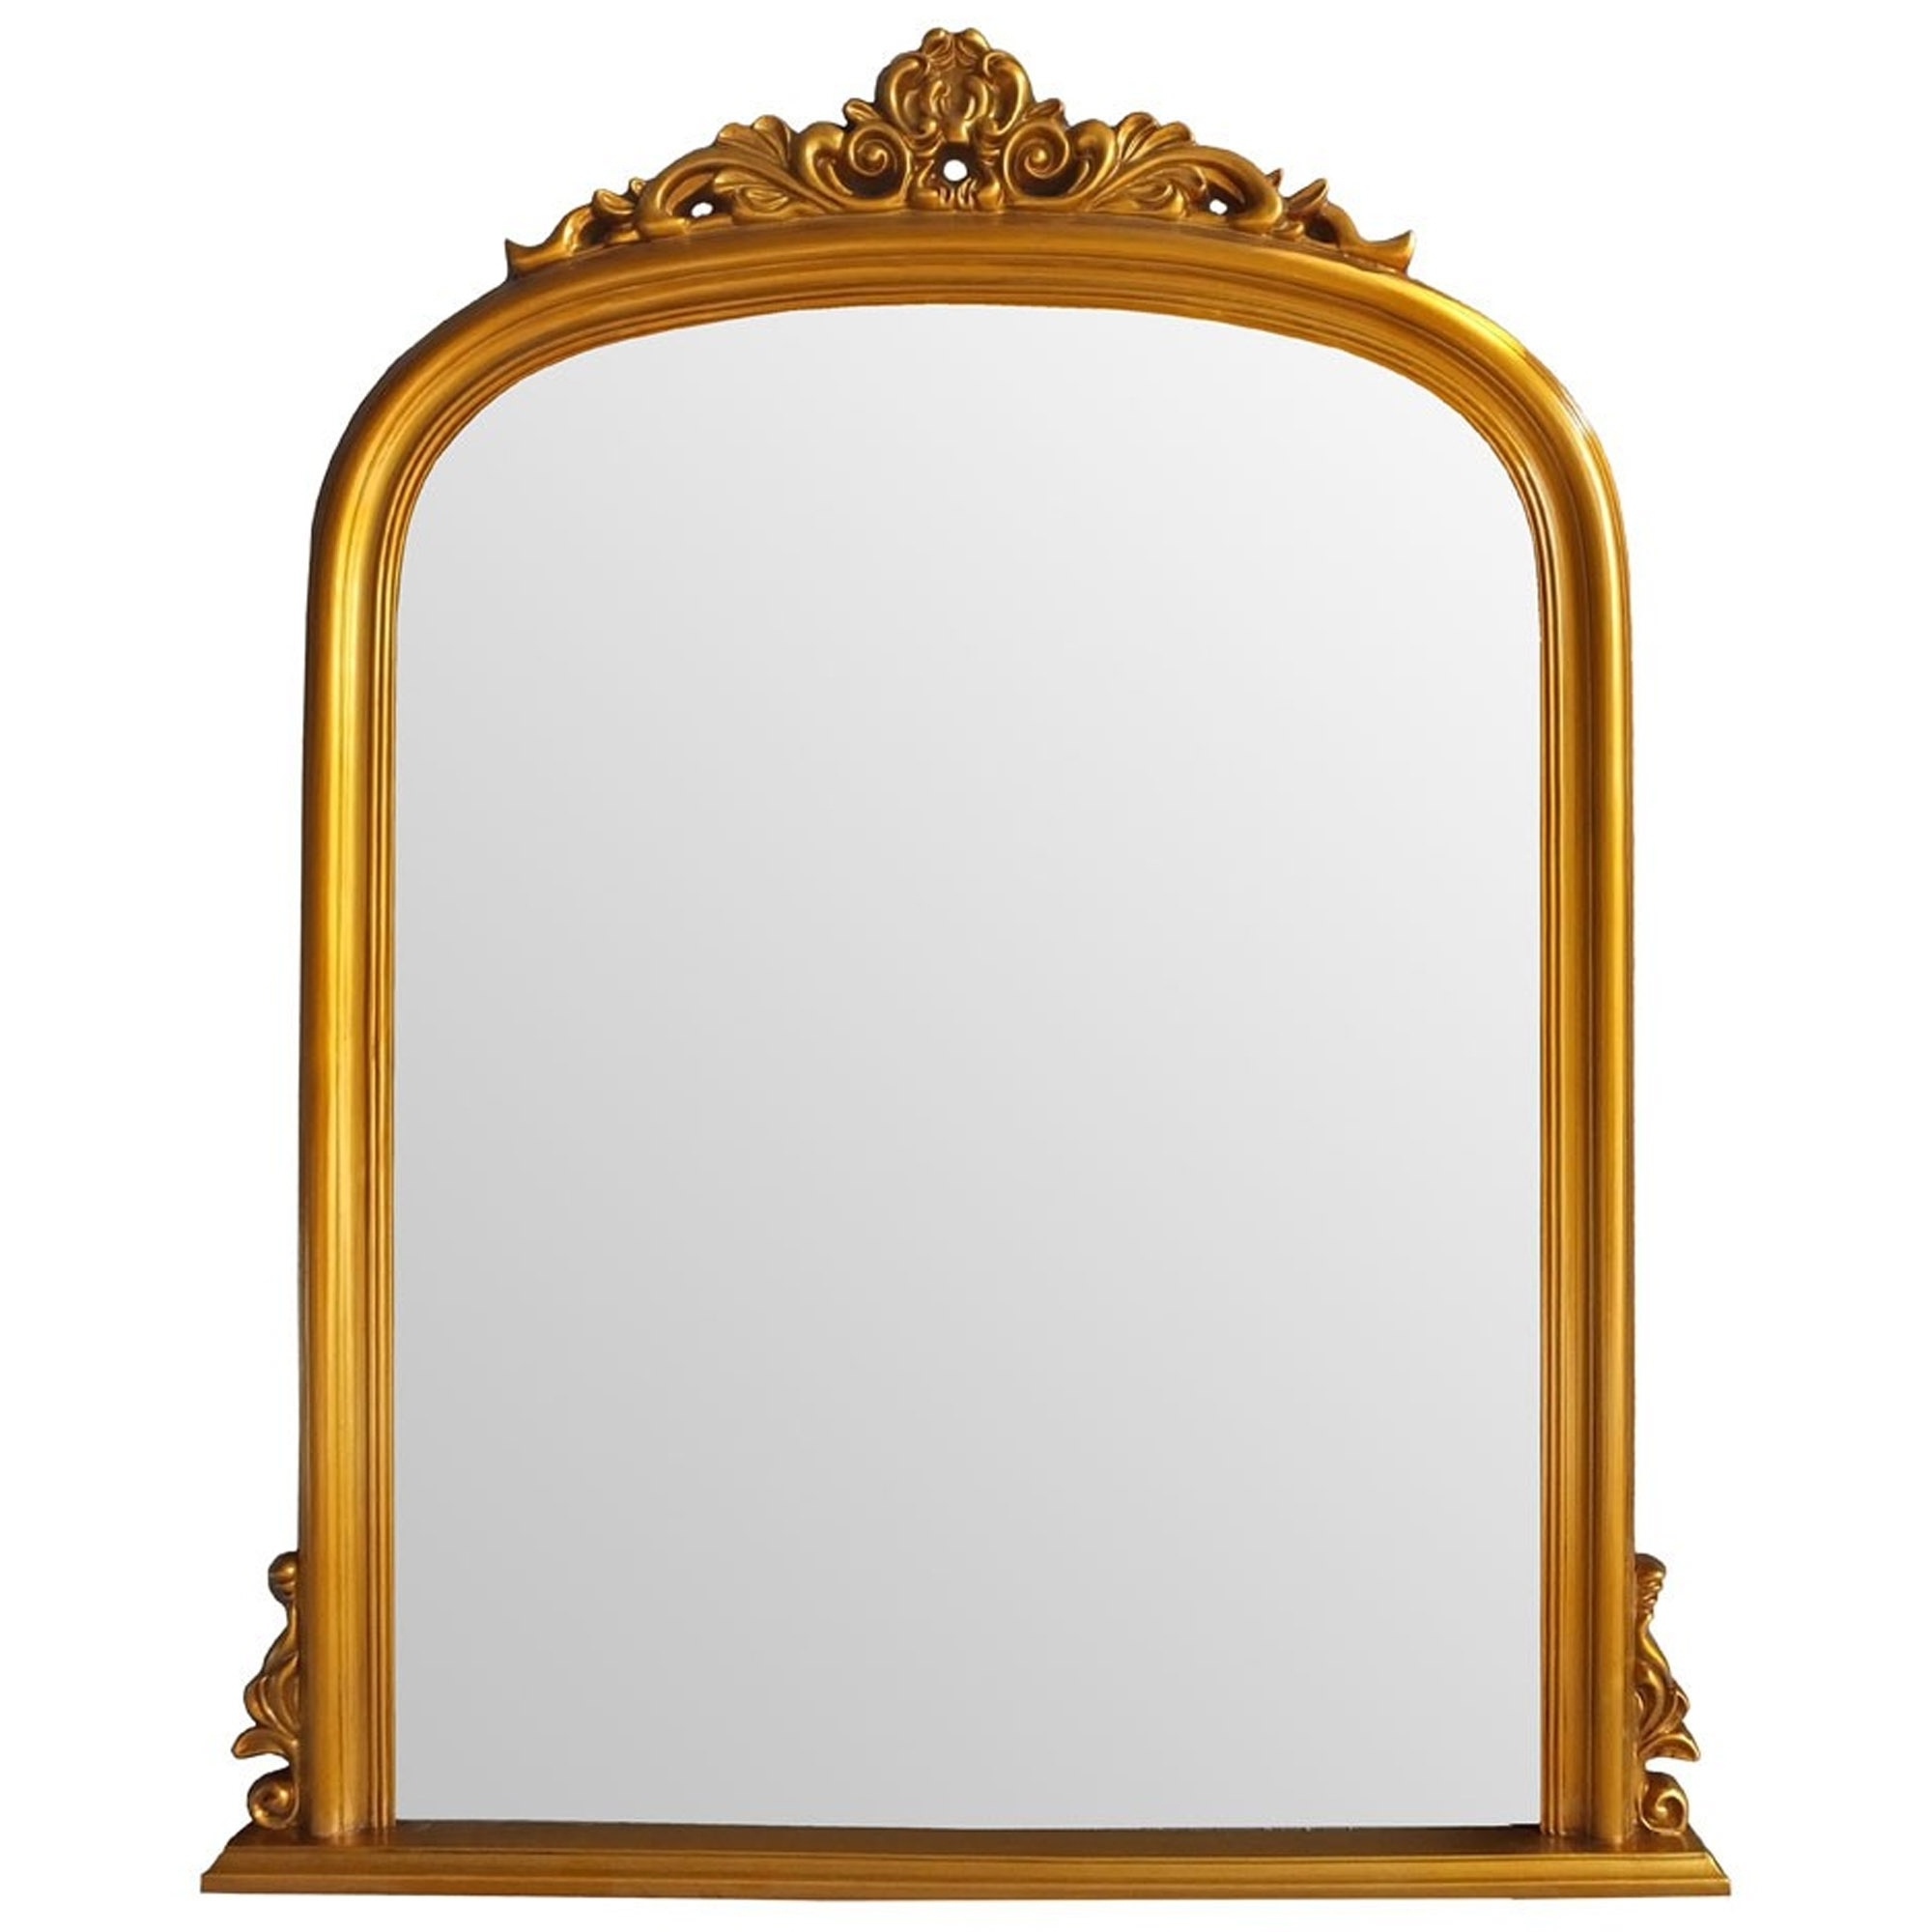 Popular Antique French Style Gold Henrietta Wall Mirror Regarding Gold Wall Mirrors (View 14 of 20)